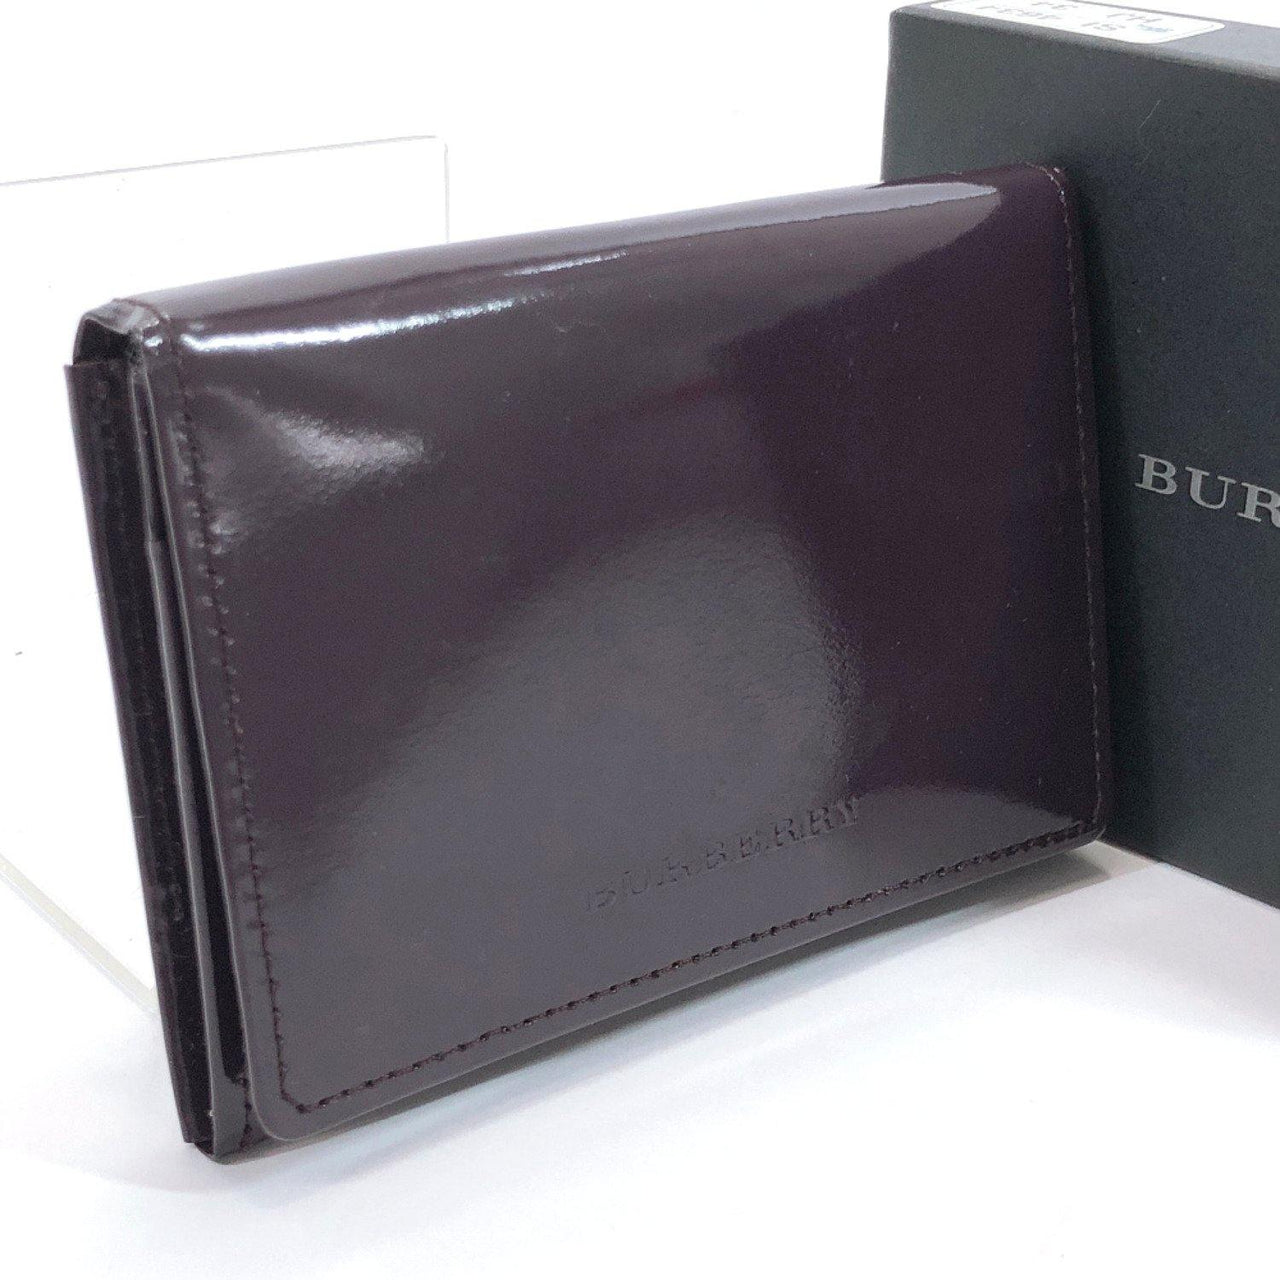 BURBERRY Card Case name card holder Patent leather purple unisex Used - JP-BRANDS.com